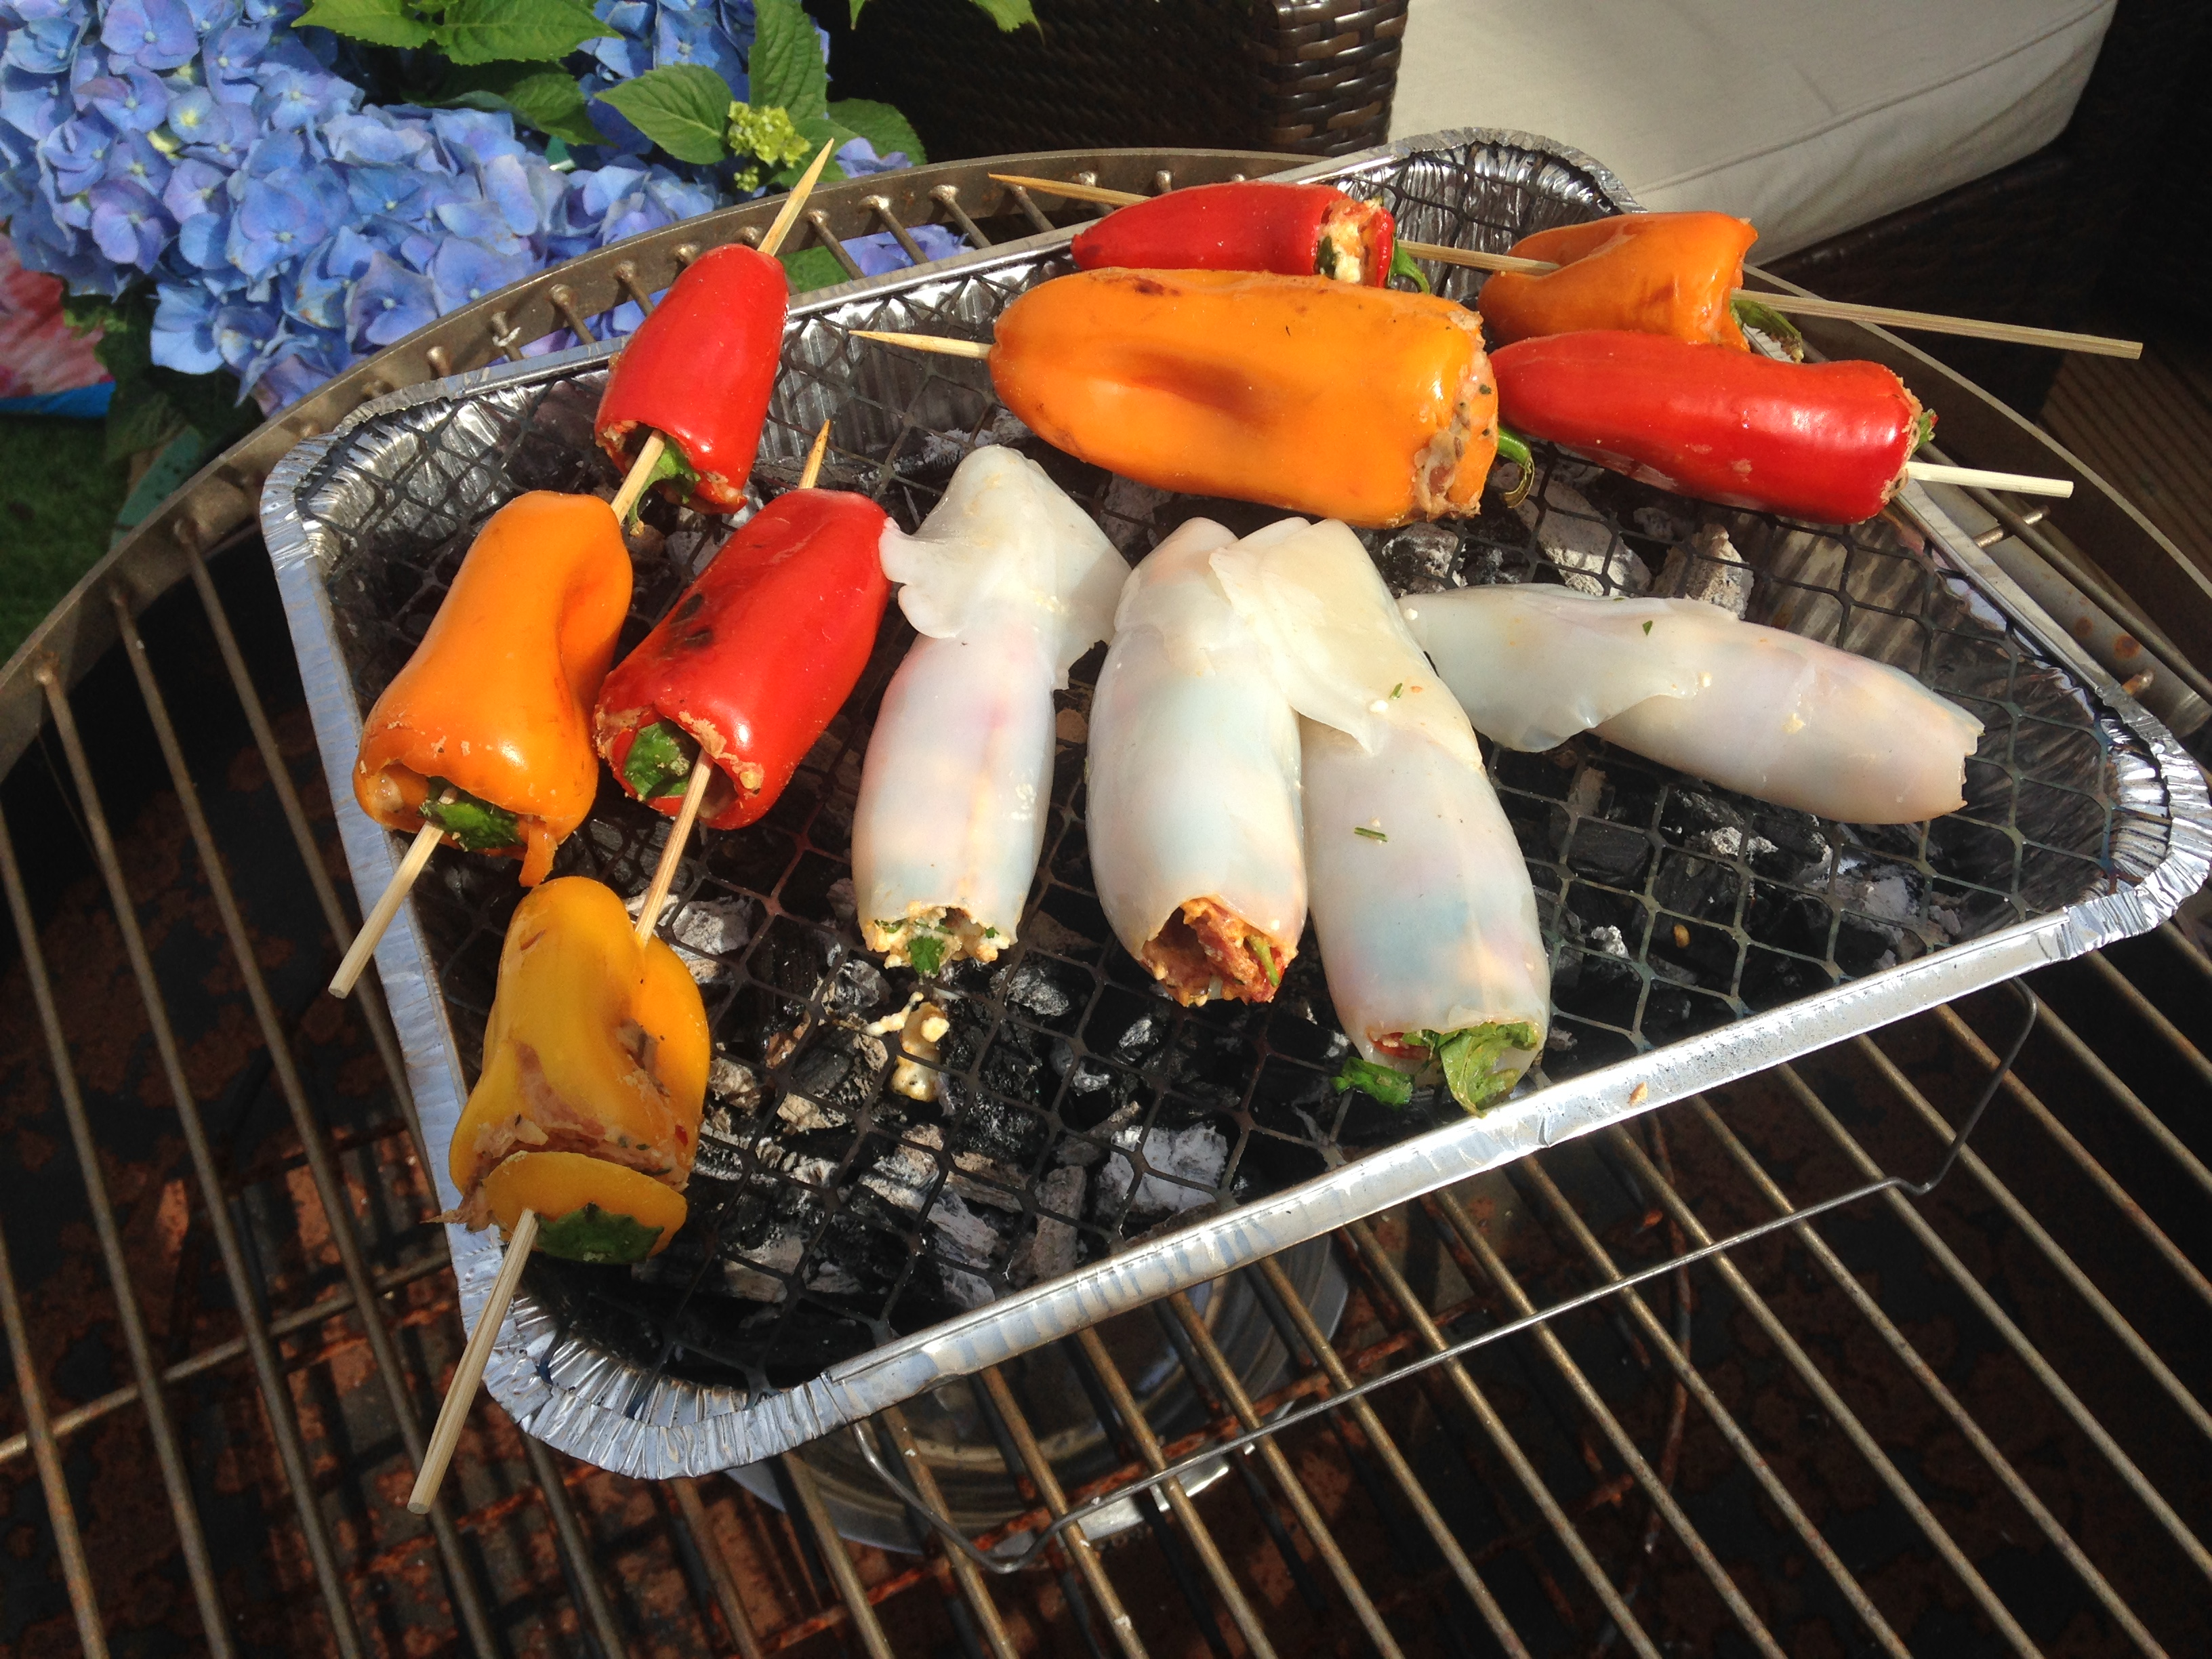 BBQ image of peppers